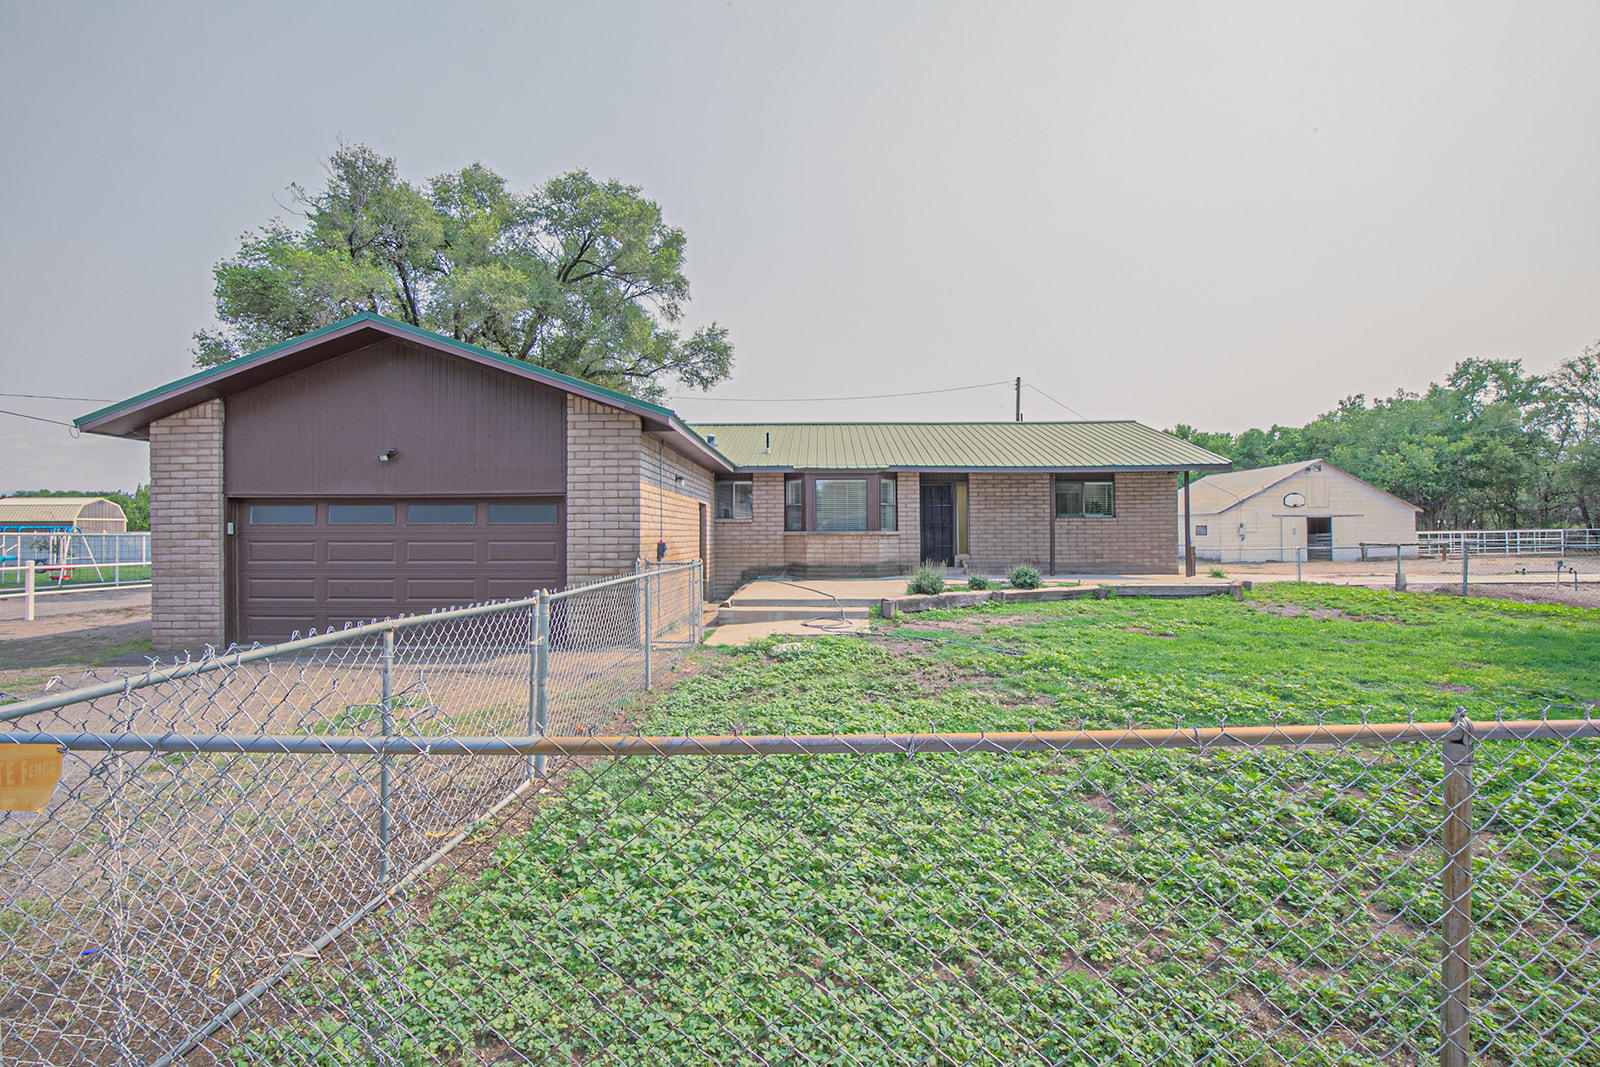 Beautiful Bosque Farms Horse Property sits on 3.2 prime acres with MRGCD irrigation!  Adequate space for all of your livestock, tractors, trailers, RV/5th wheel, and other toys!  Property features 4 stall barn with 3 connecting corrals, pasture, loft, tack room, hay storage, chicken coop, workshop/shed, open patio. Well maintained home with refrigerated air, an open split floor plan, spacious living area with fireplace, 3 bedrooms, 2 full bathrooms and a bright sunroom/hobby room. City water and sewer. Nearby amenities include a rodeo arena, biking/jogging/riding trails, library, community center, tennis and basketball courts, parks schools, shopping and restaurants. Enjoy quiet country living  just minutes from Albuquerque.